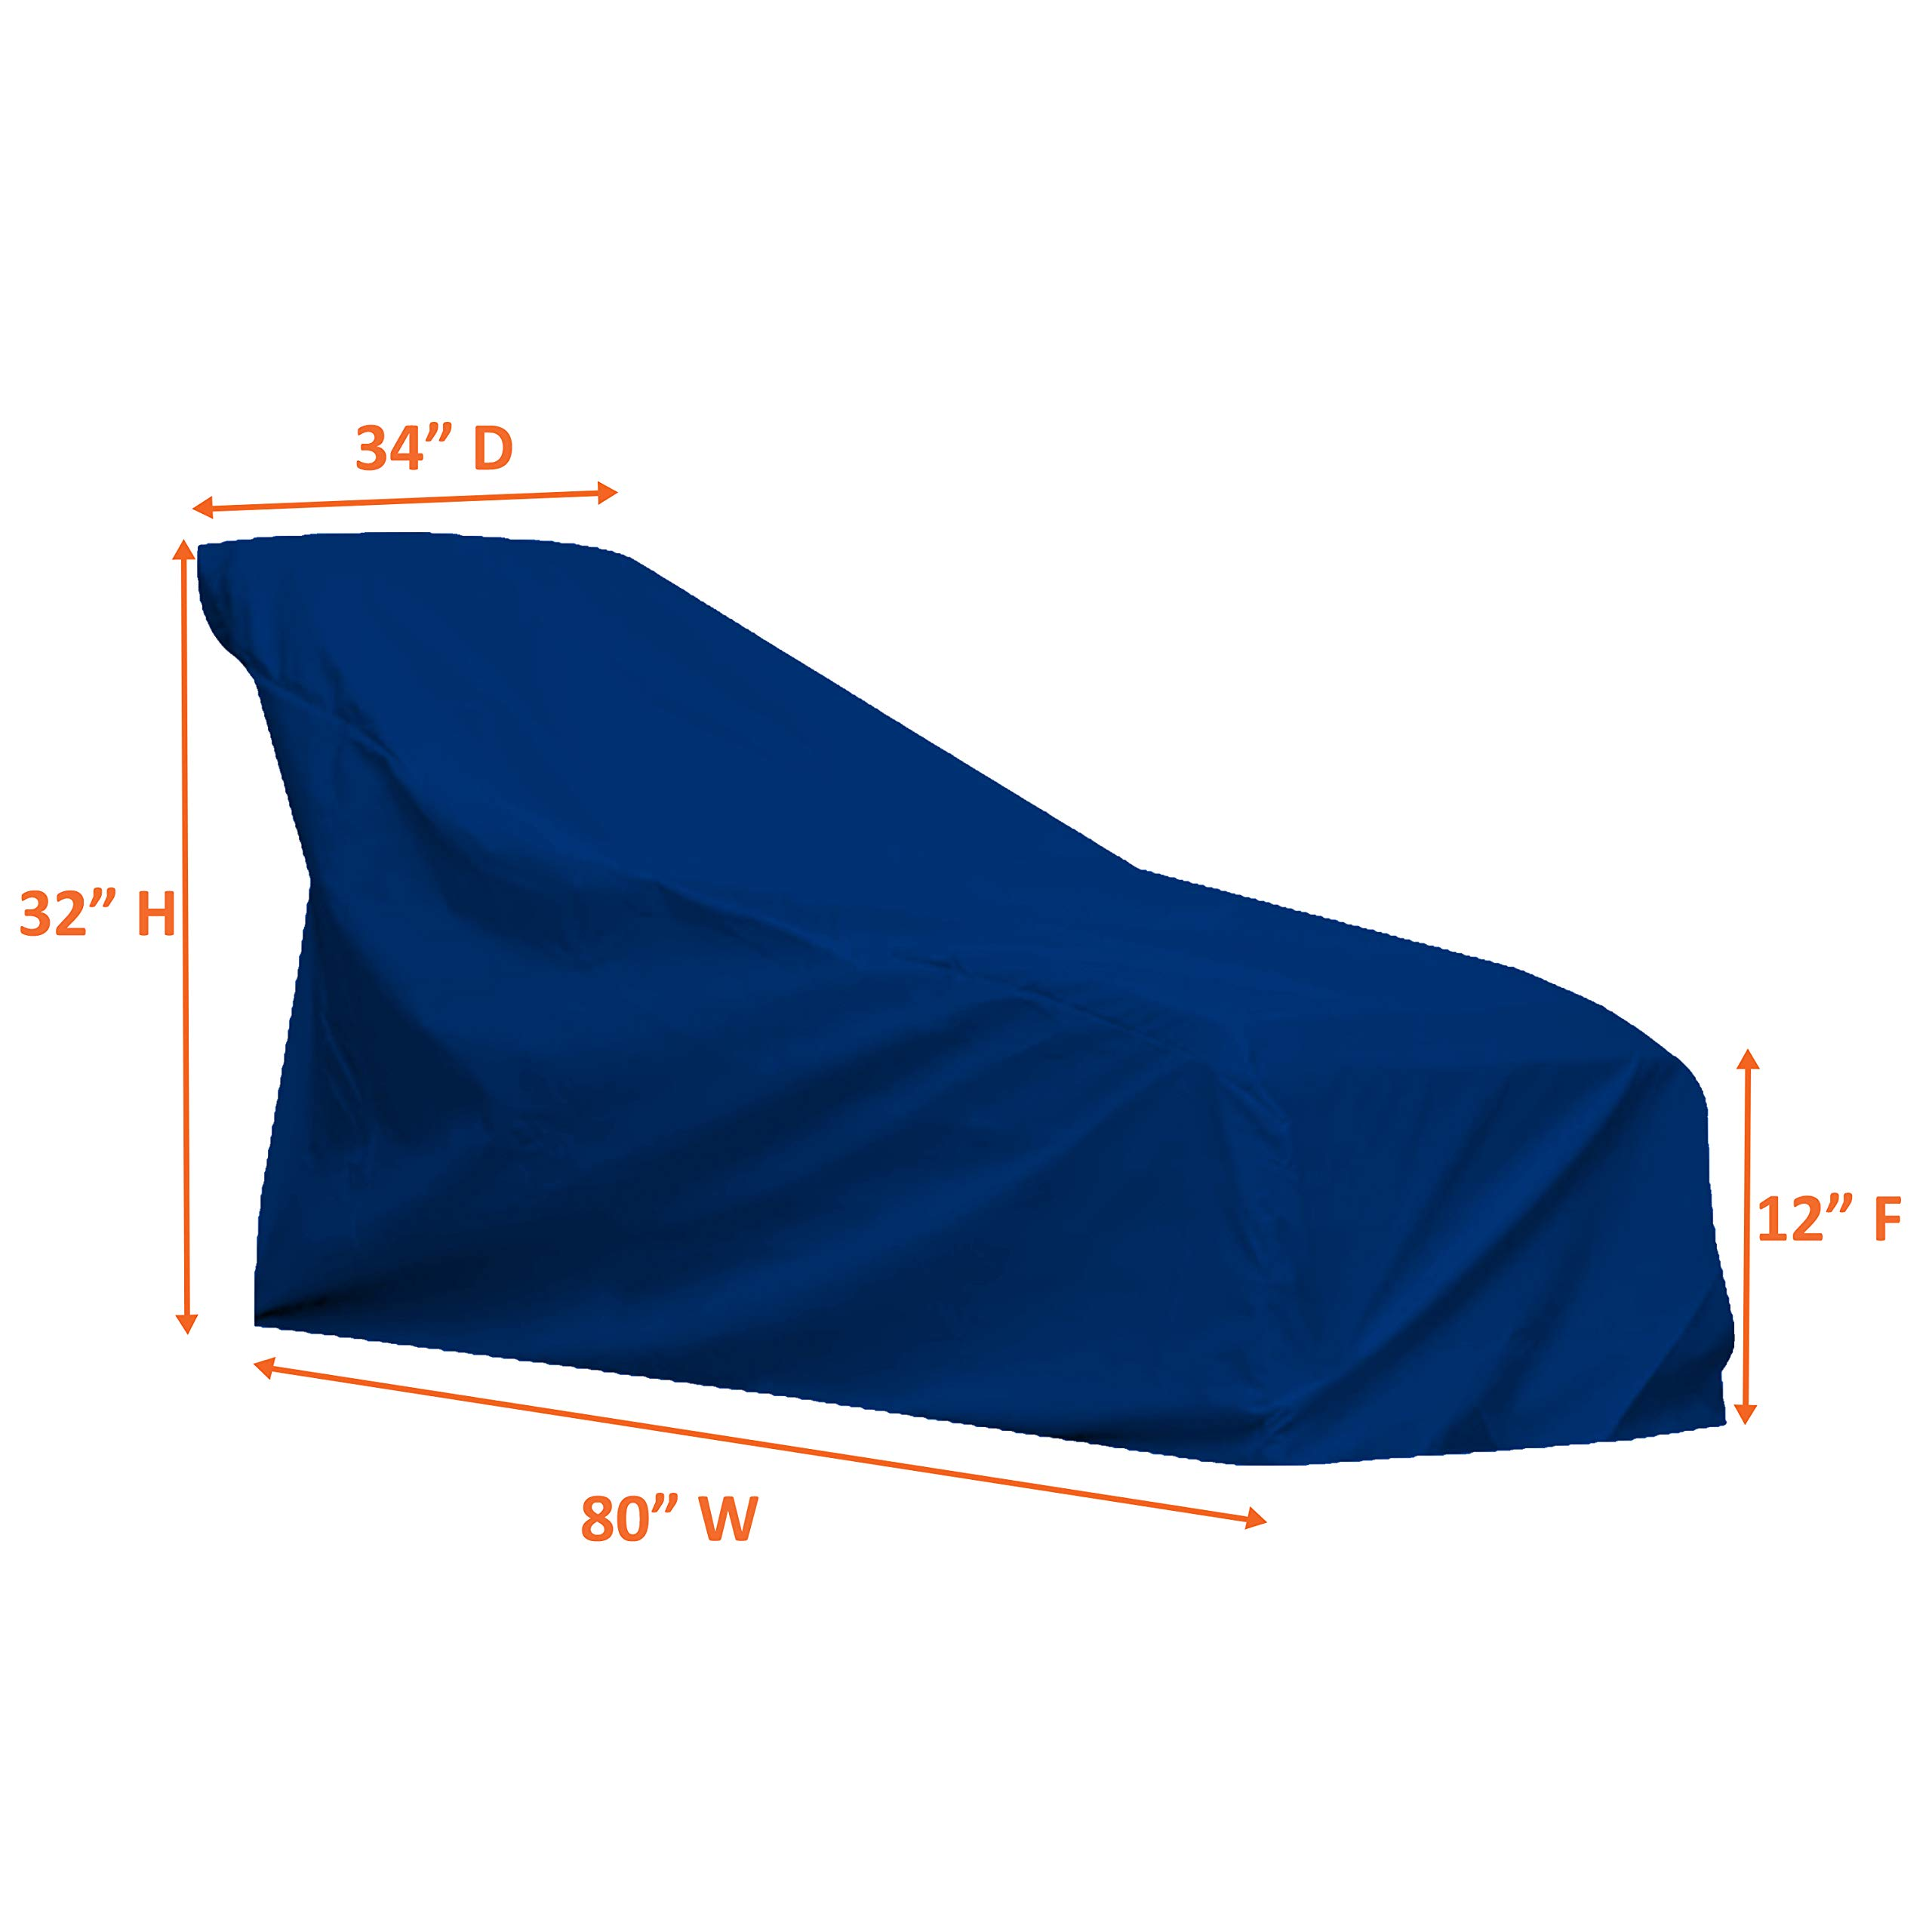 COVERS & ALL Chaise Lounge Cover 18 Oz Waterproof - 100% UV & Weather Resistant Outdoor Chaise Cover PVC Coated with Air Pockets and Drawstring for Snug Fit (80W x 34D x 32H, Blue) by COVERS & ALL (Image #2)